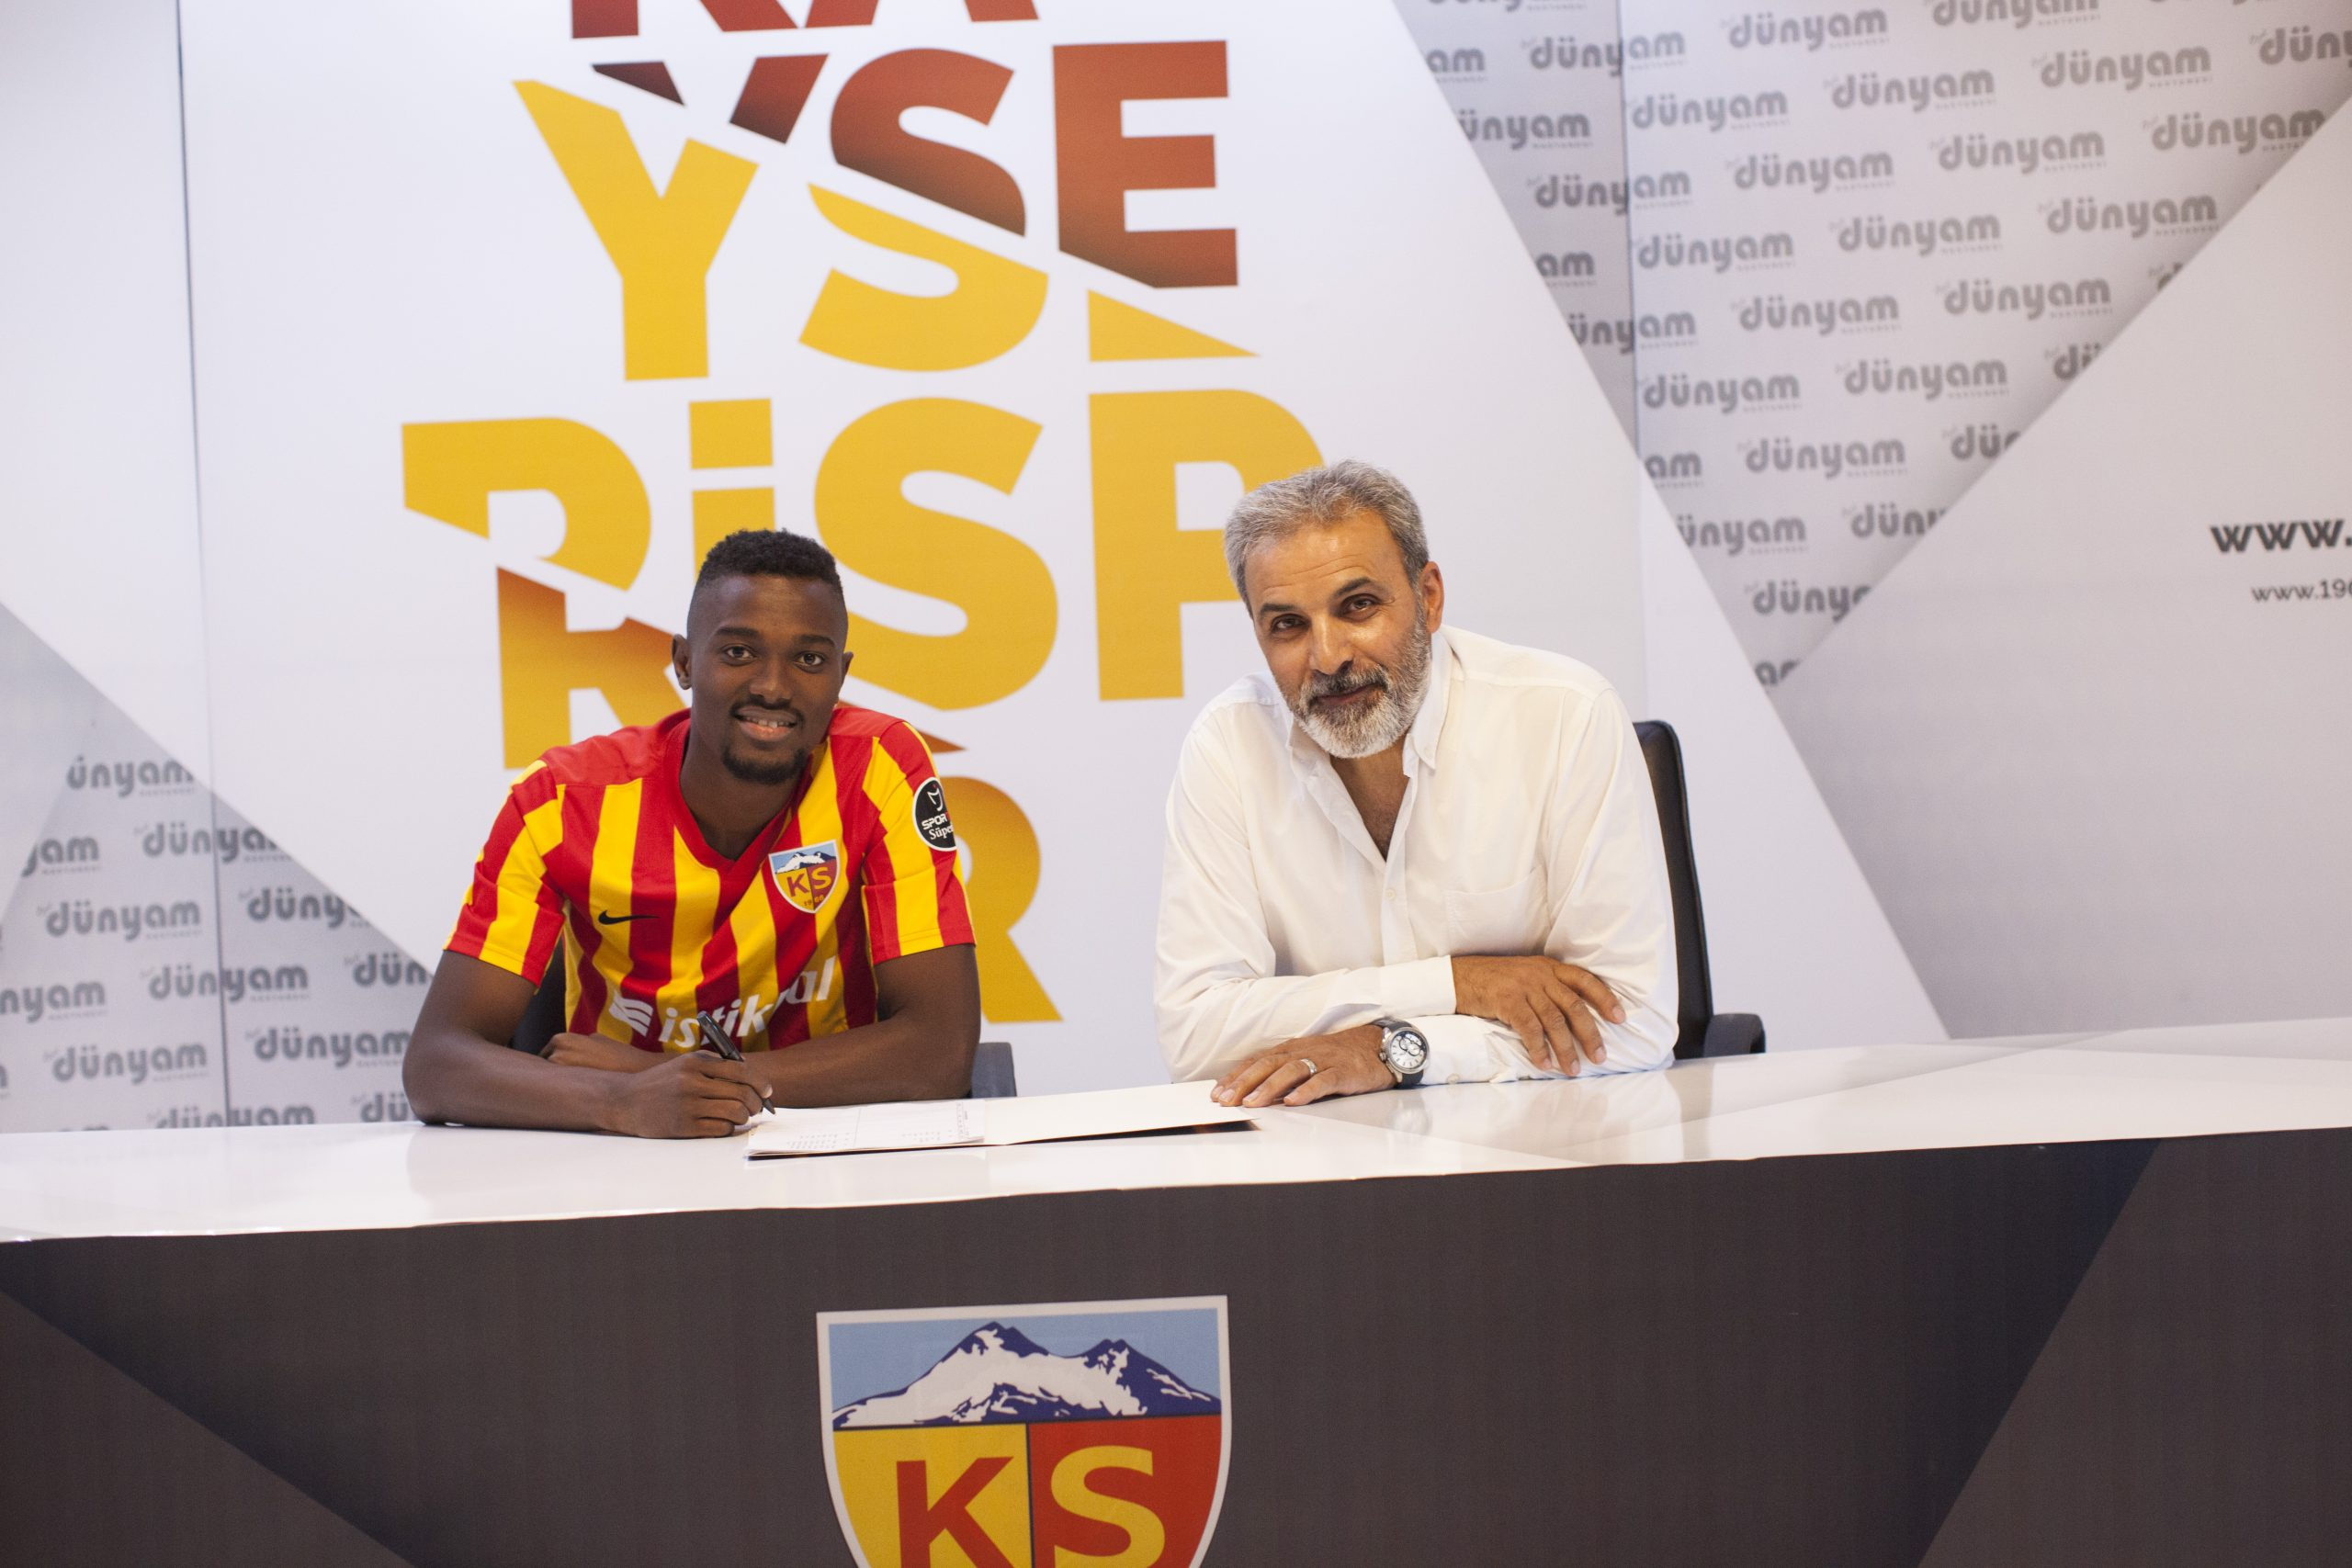 OFFICIAL: Bernard Mensah joins Kayserispor on loan from Atletico Madrid